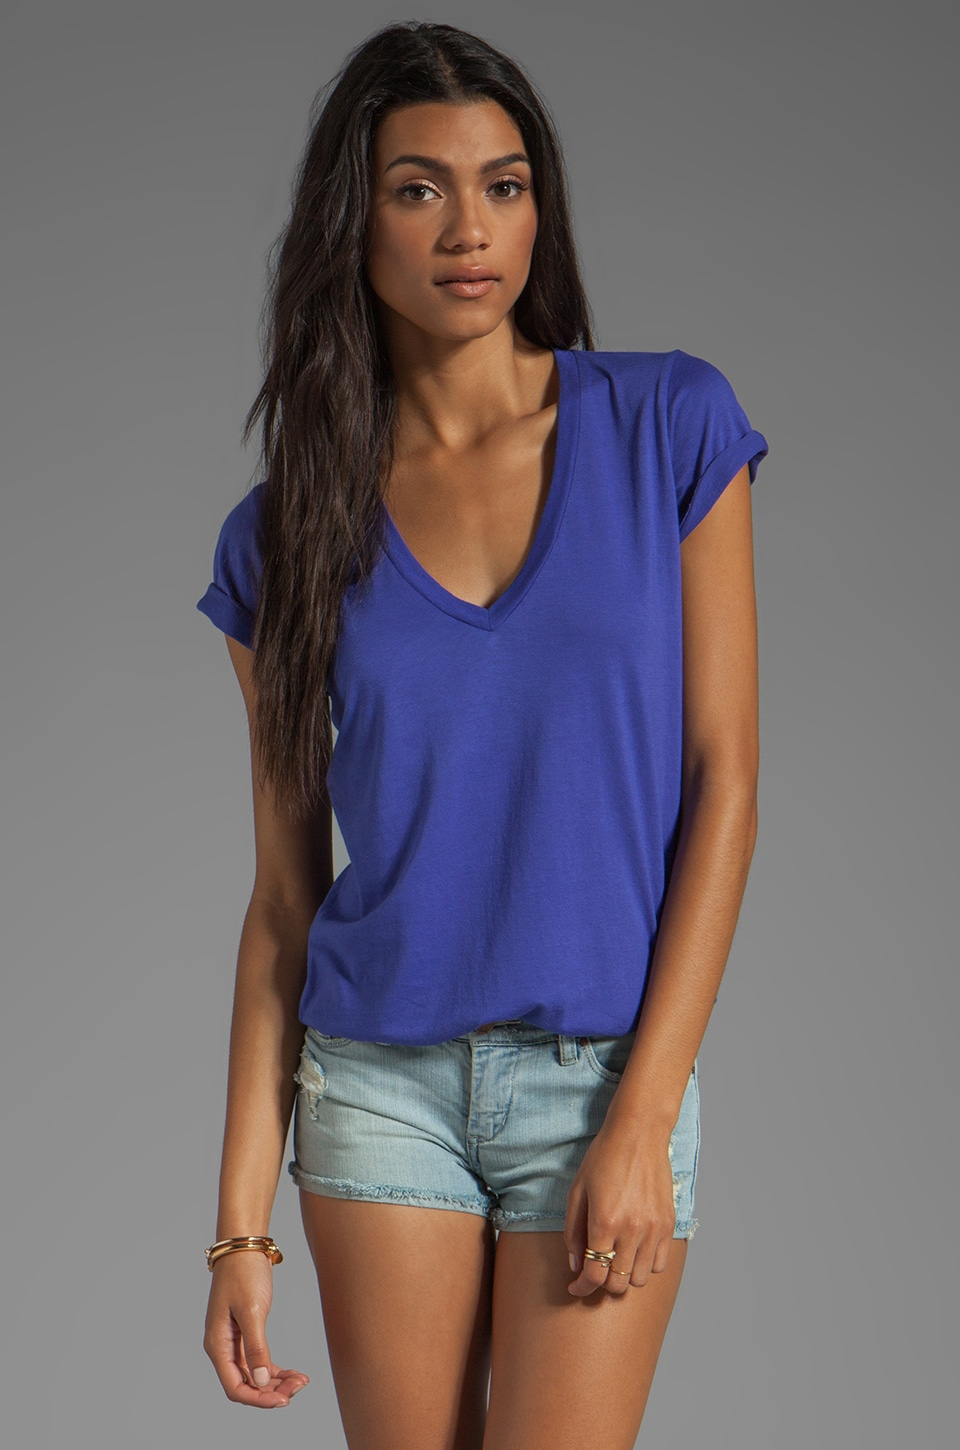 Splendid Very Light Jersey V Neck Top in Cerulean